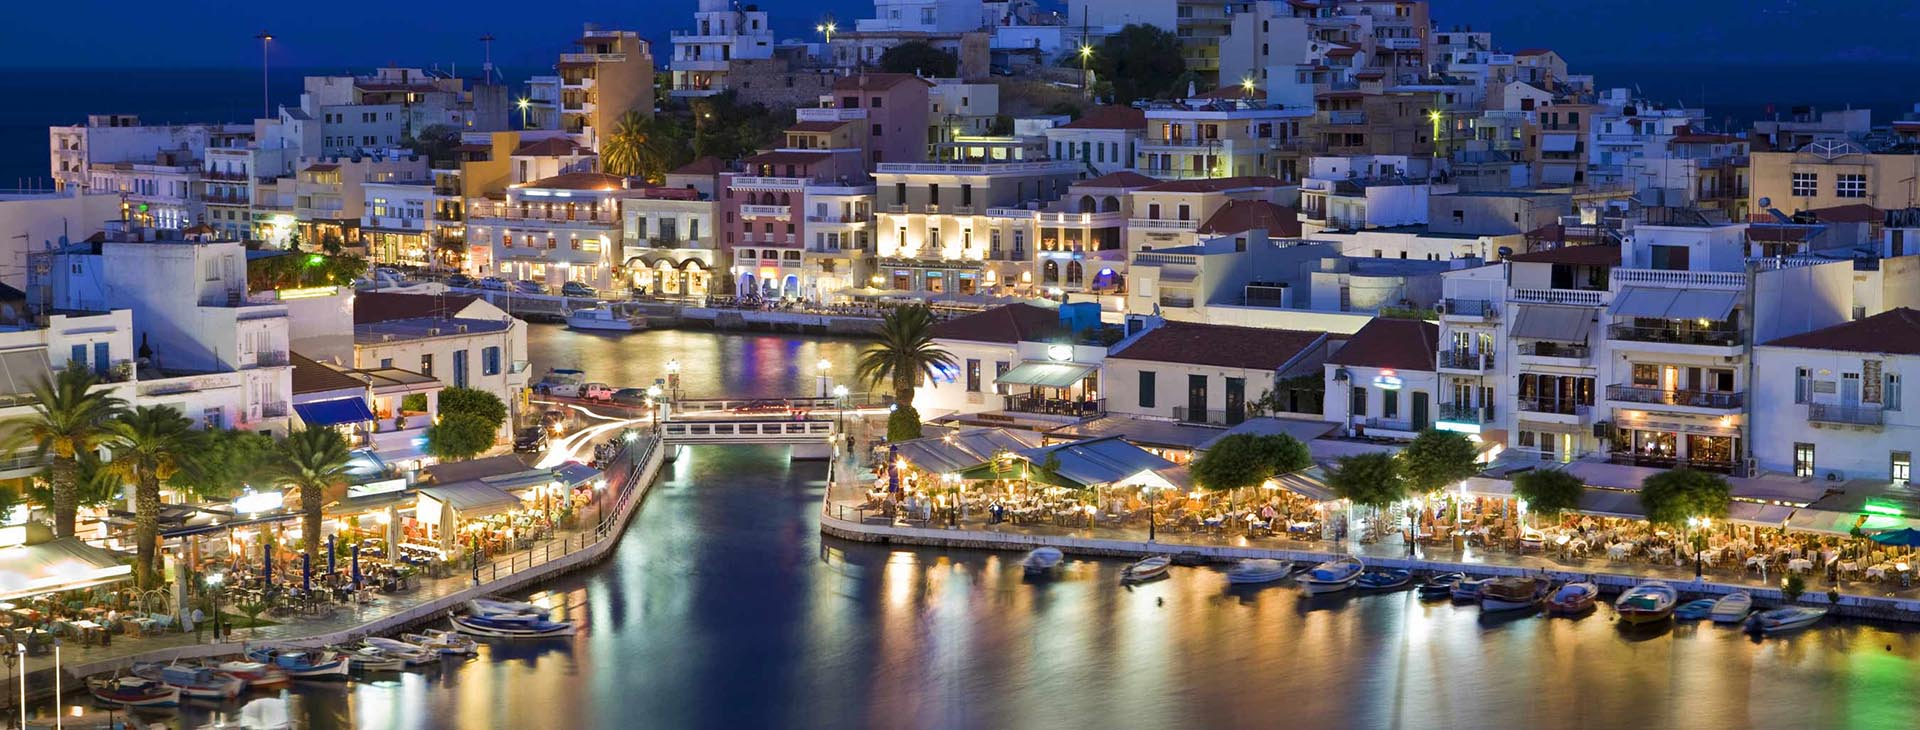 Agios Nikolaos by night, Lassithi